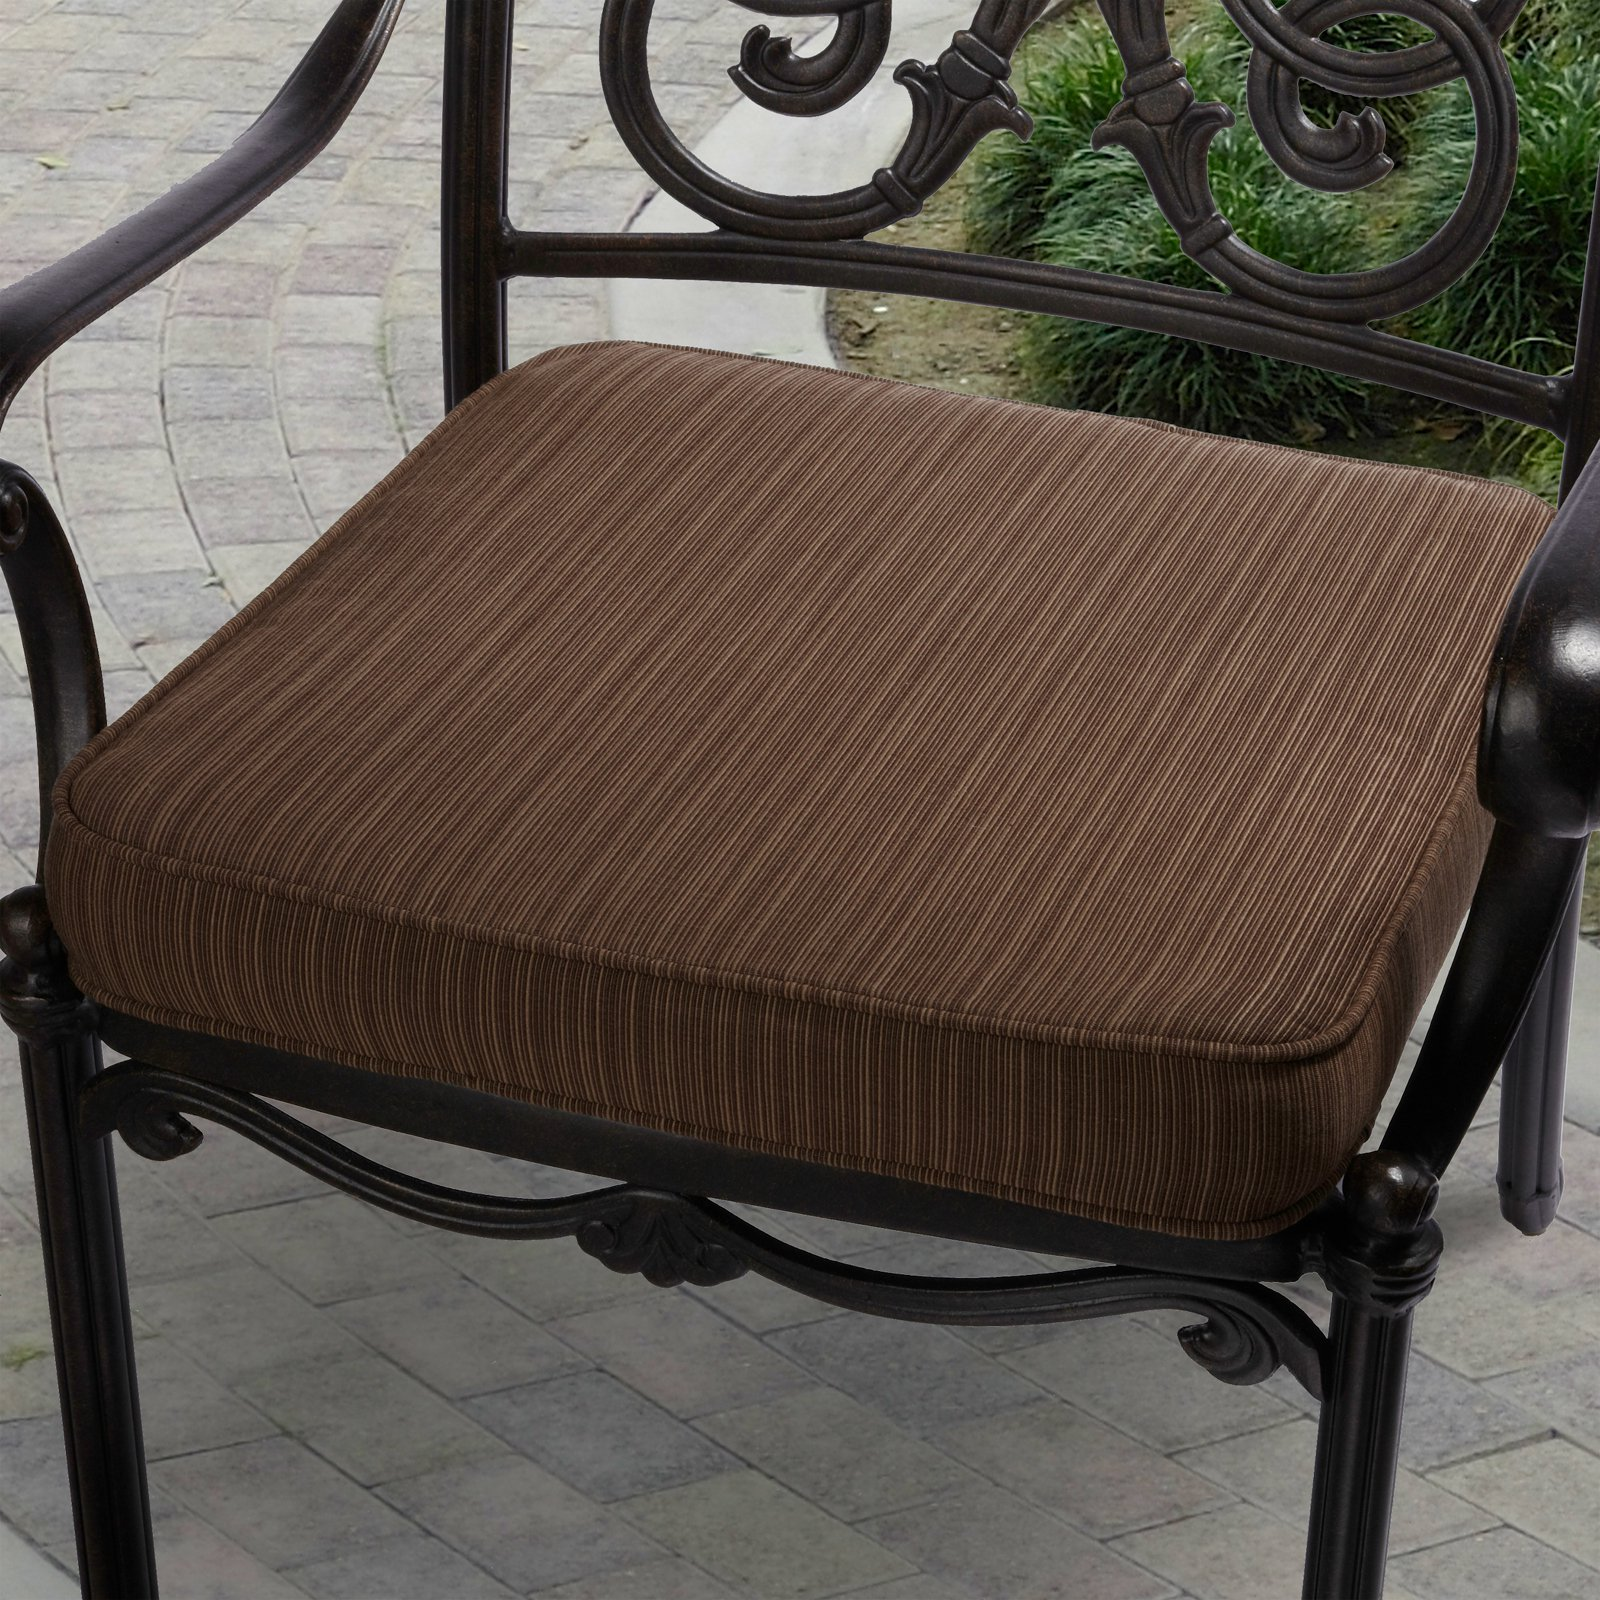 Mozaic Company Sunbrella Corded Indoor/Outdoor Chair Cushion